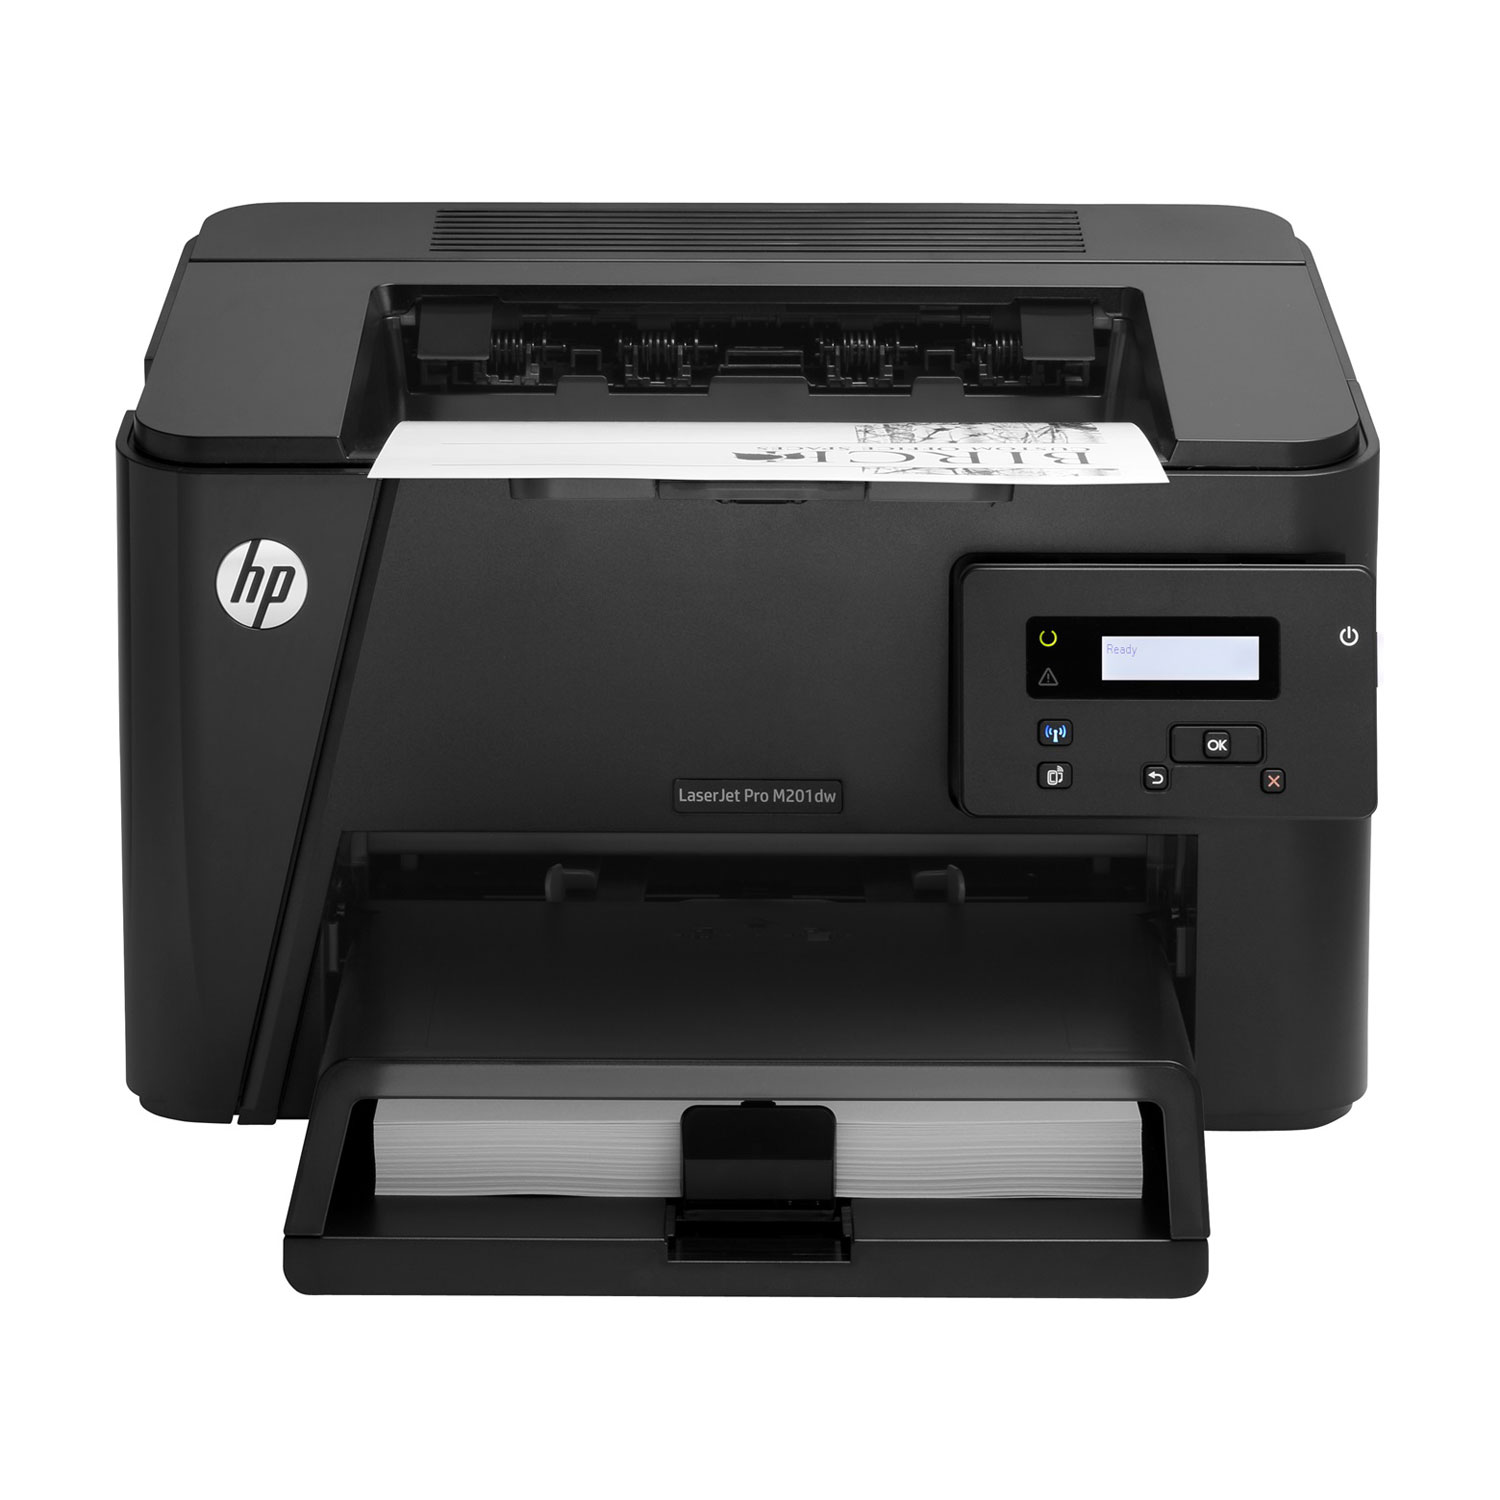 hp laserjet pro 200 m201dw cf456a imprimante laser hp sur. Black Bedroom Furniture Sets. Home Design Ideas